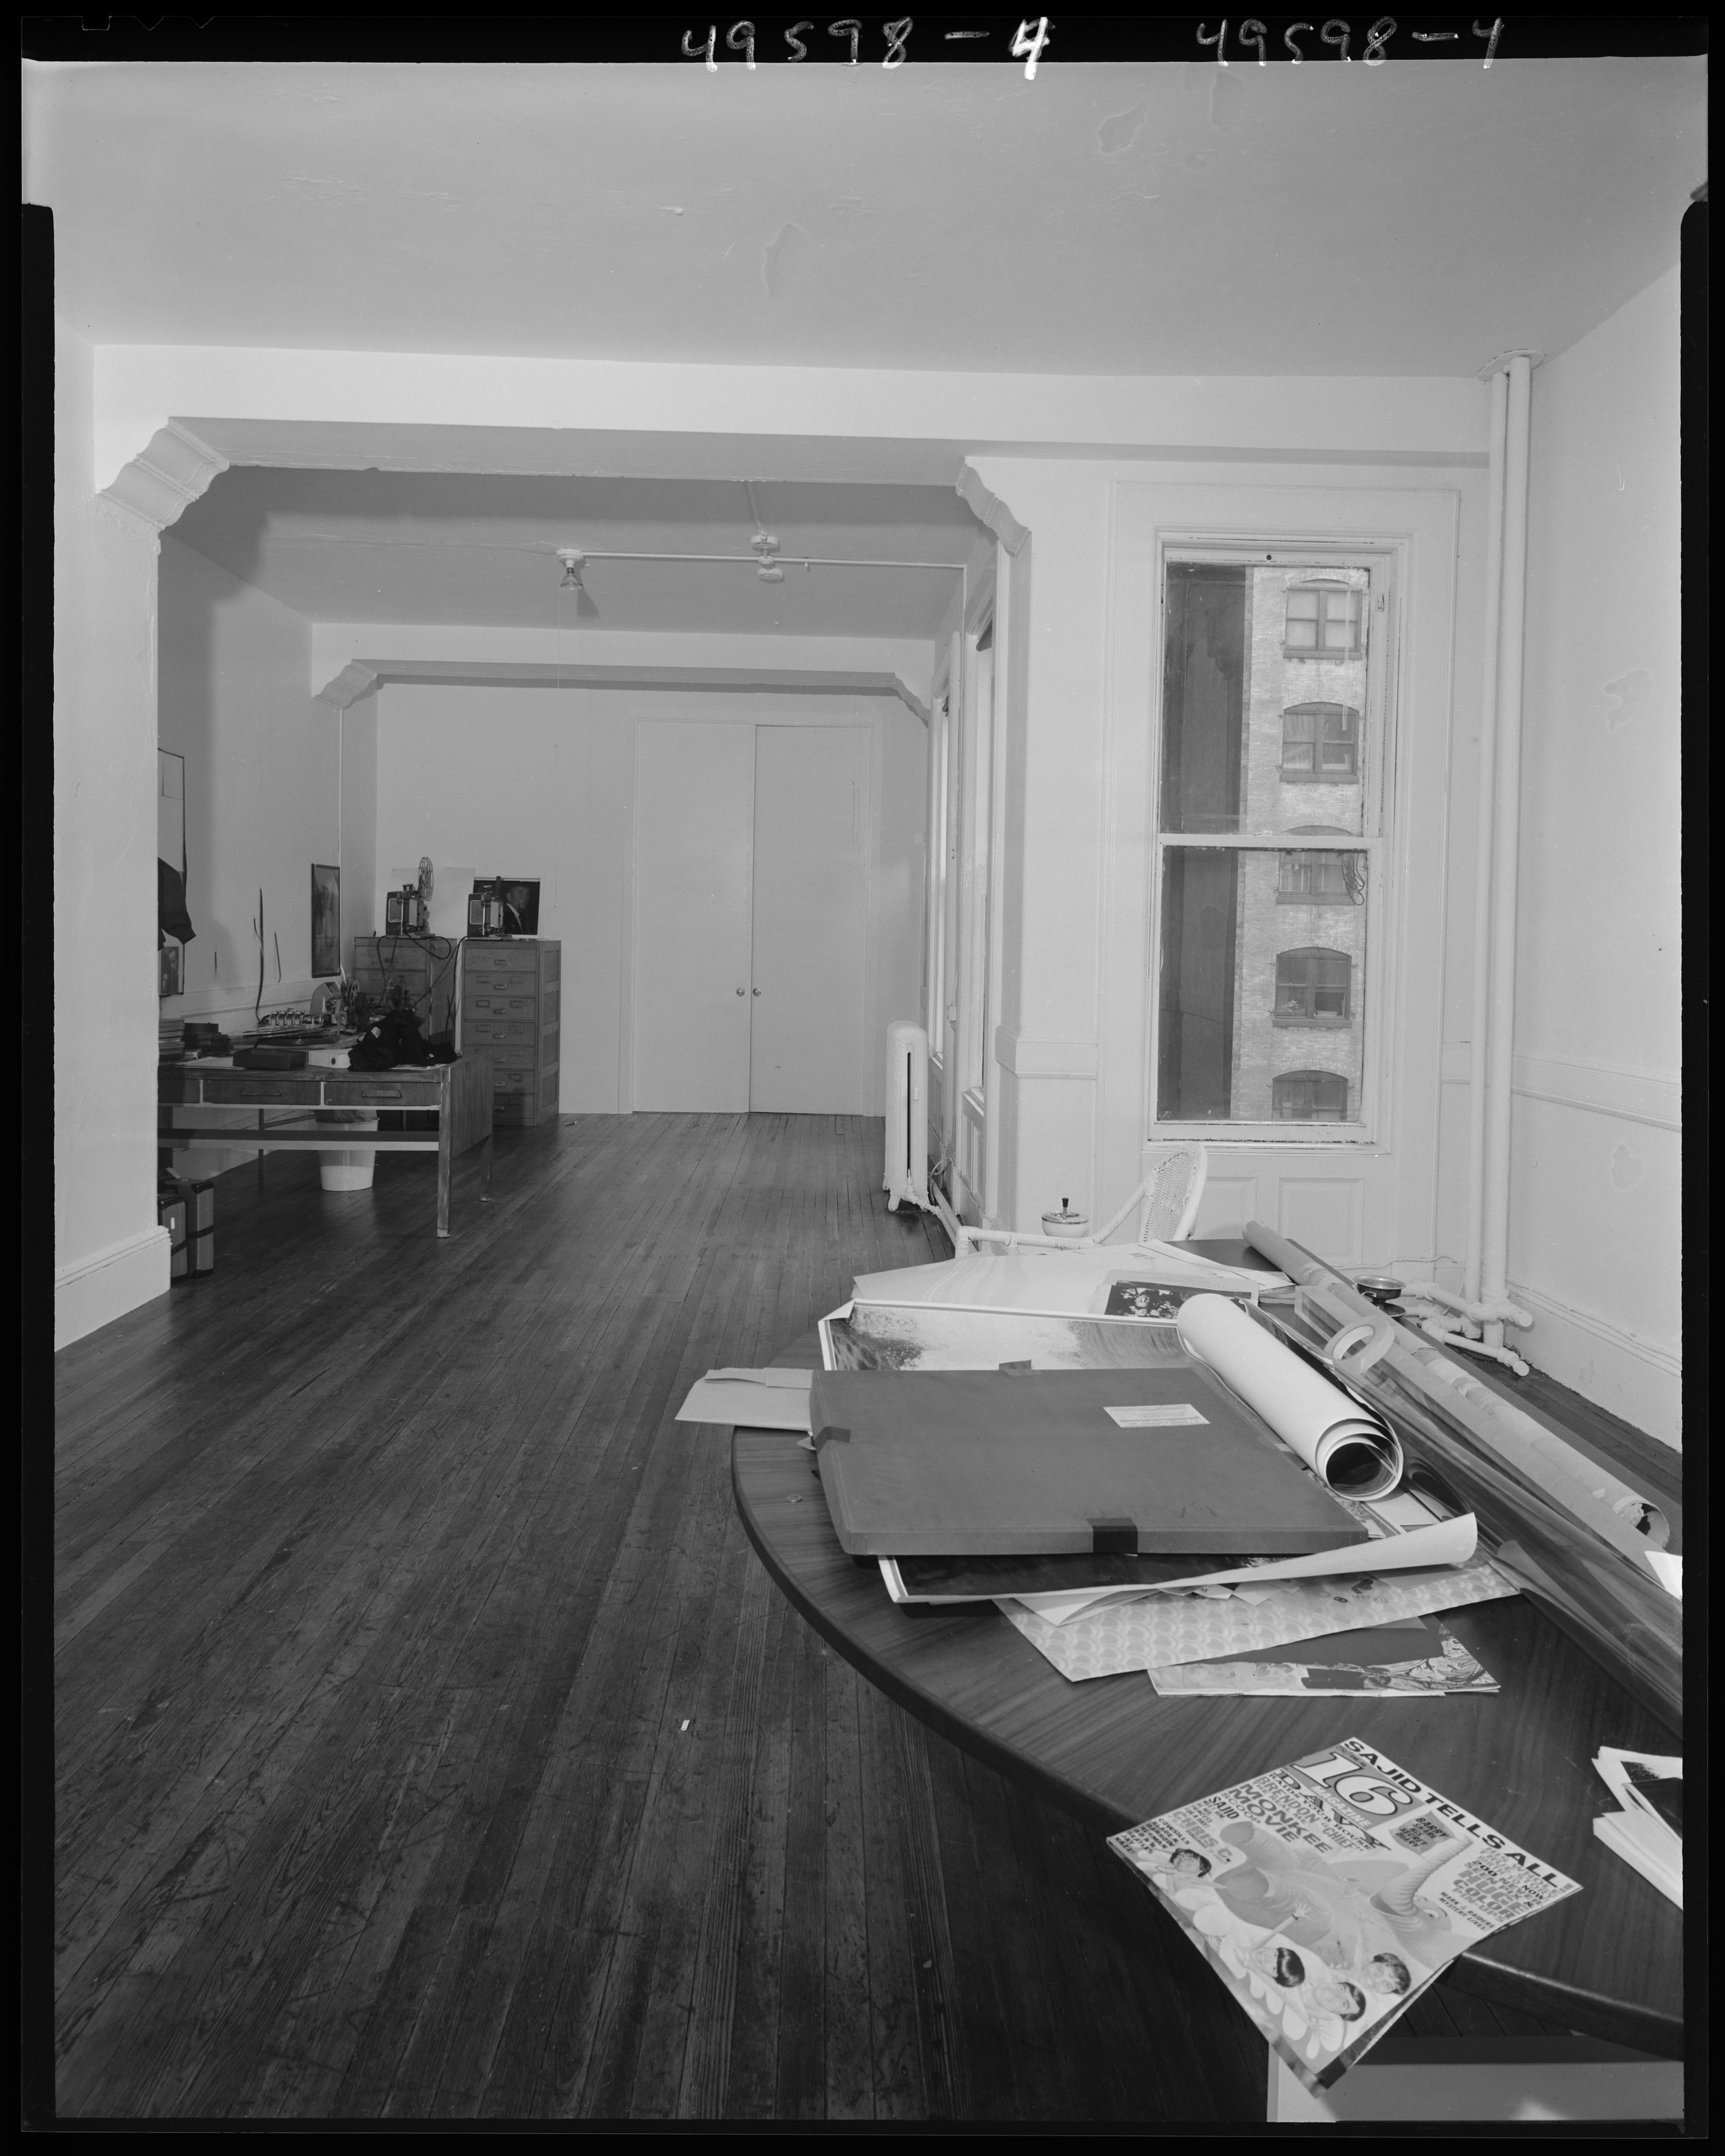 nypd_49598-04: Felonious assault scene at 33 Union Square where Andy Warhol and Mario Amaya were shot by Valerie Solanas, front room towards rear door, facing west, June 4, 1968. NYPD Photo Collection, NYC Municipal Archives.